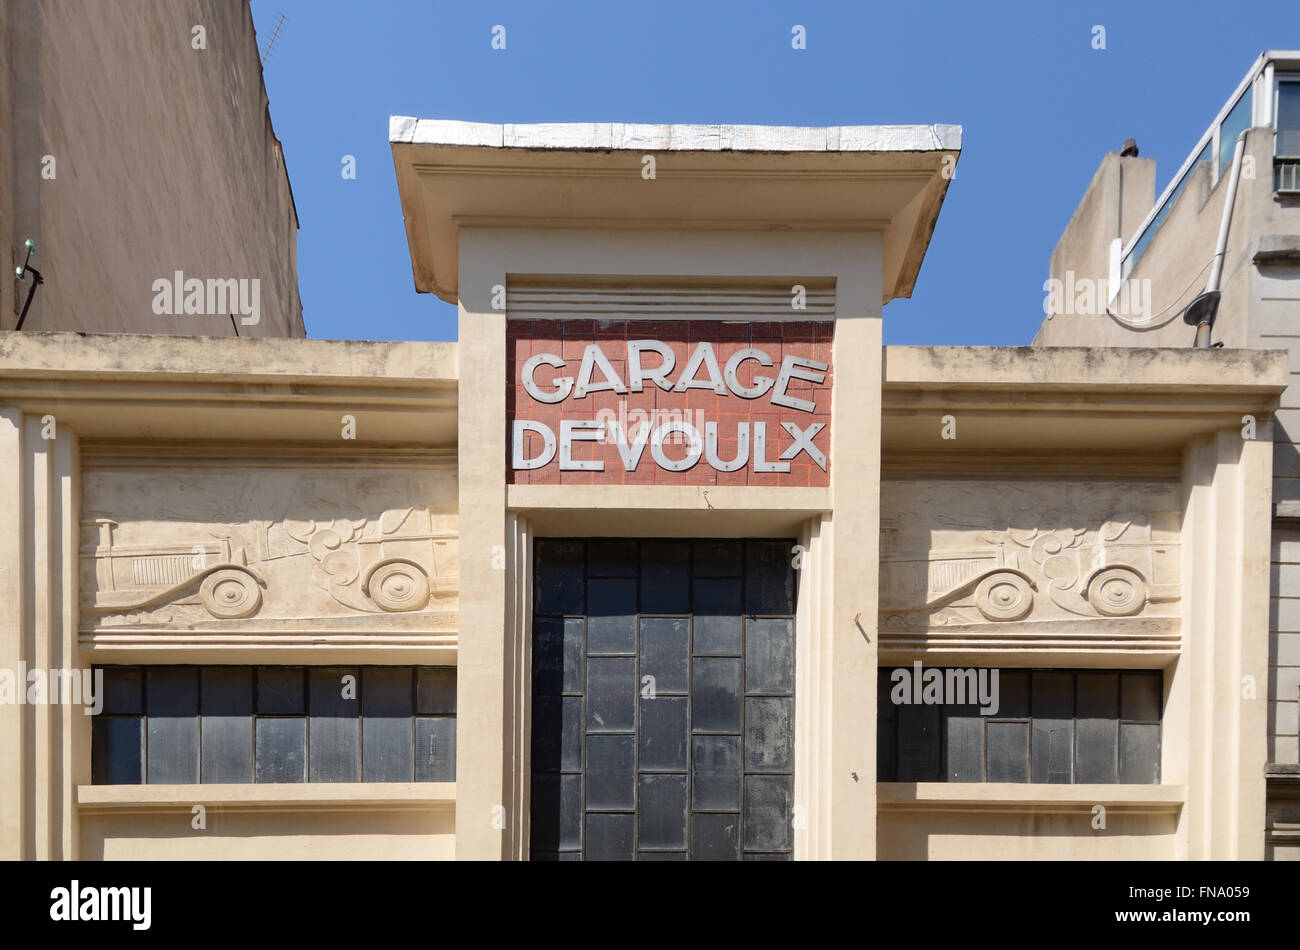 fa ade of 1920s art deco garage devoulx with bas relief or carving of stock photo 99179285 alamy. Black Bedroom Furniture Sets. Home Design Ideas